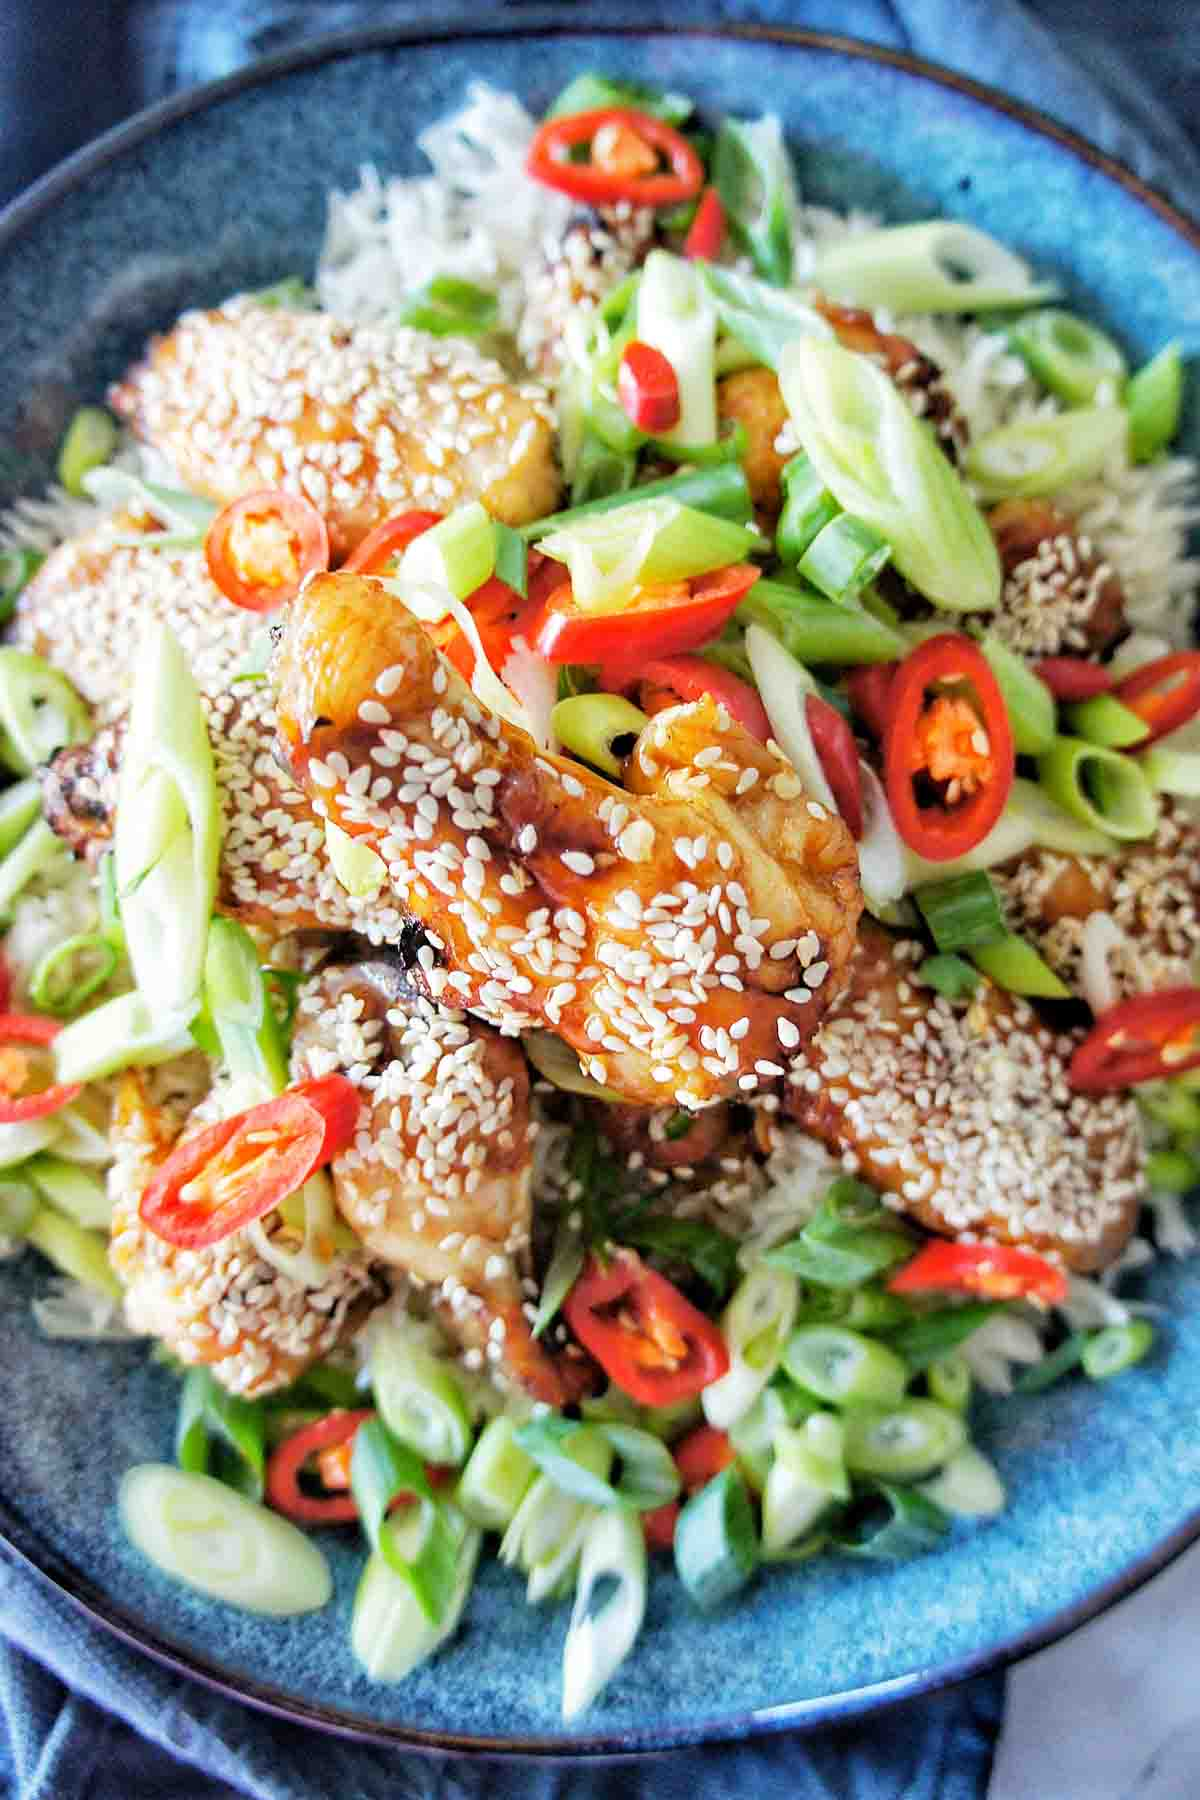 Sticky Chicken wings in a blue bowl with white rice, green sliced onions, red chilli and sesame seeds